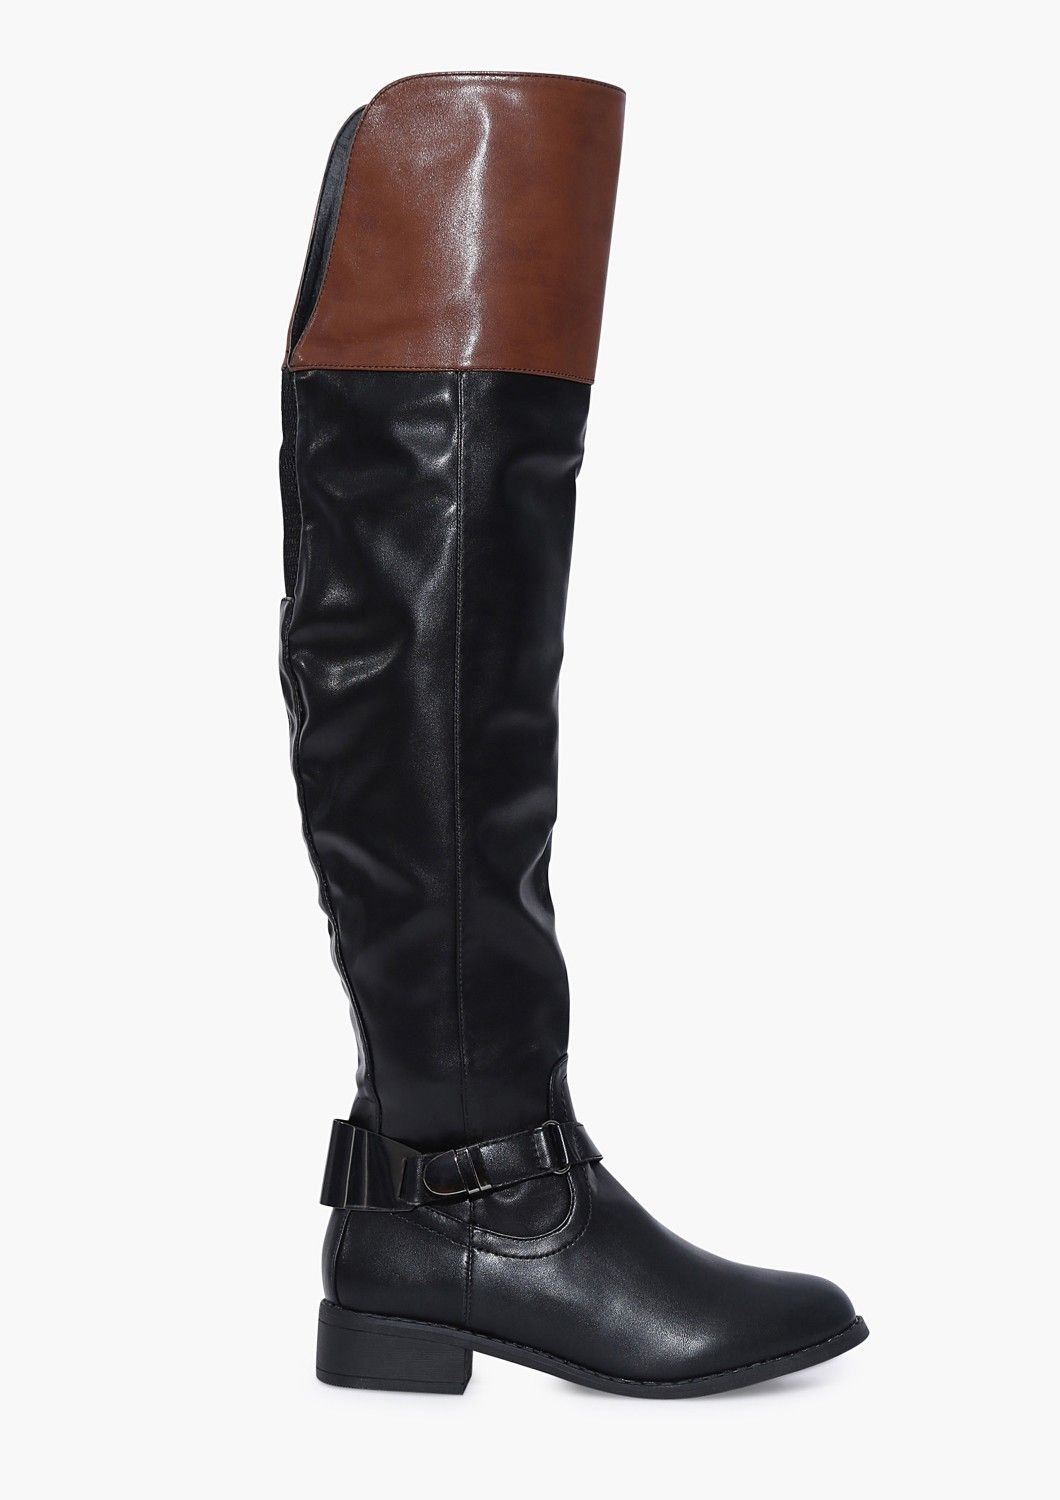 Ralph Knee High Boots in Black